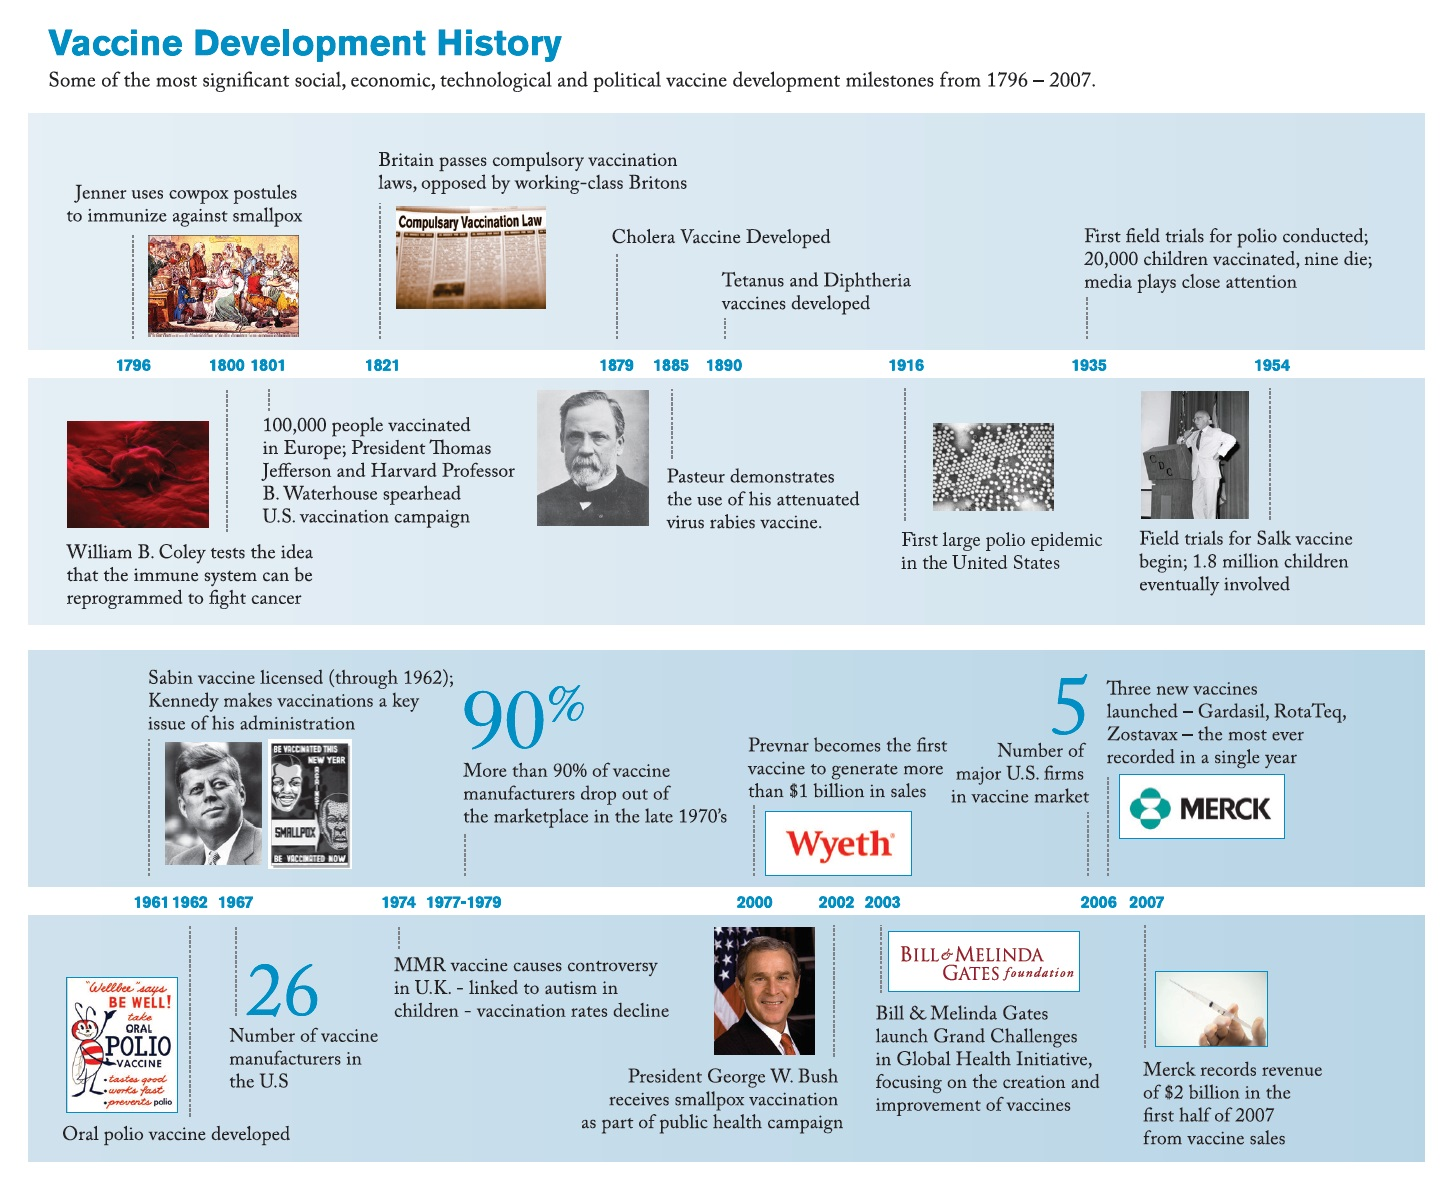 Figure 1 Vaccine development history, the most significant social, economic, technological and political vaccine development milestones from 1796-2007